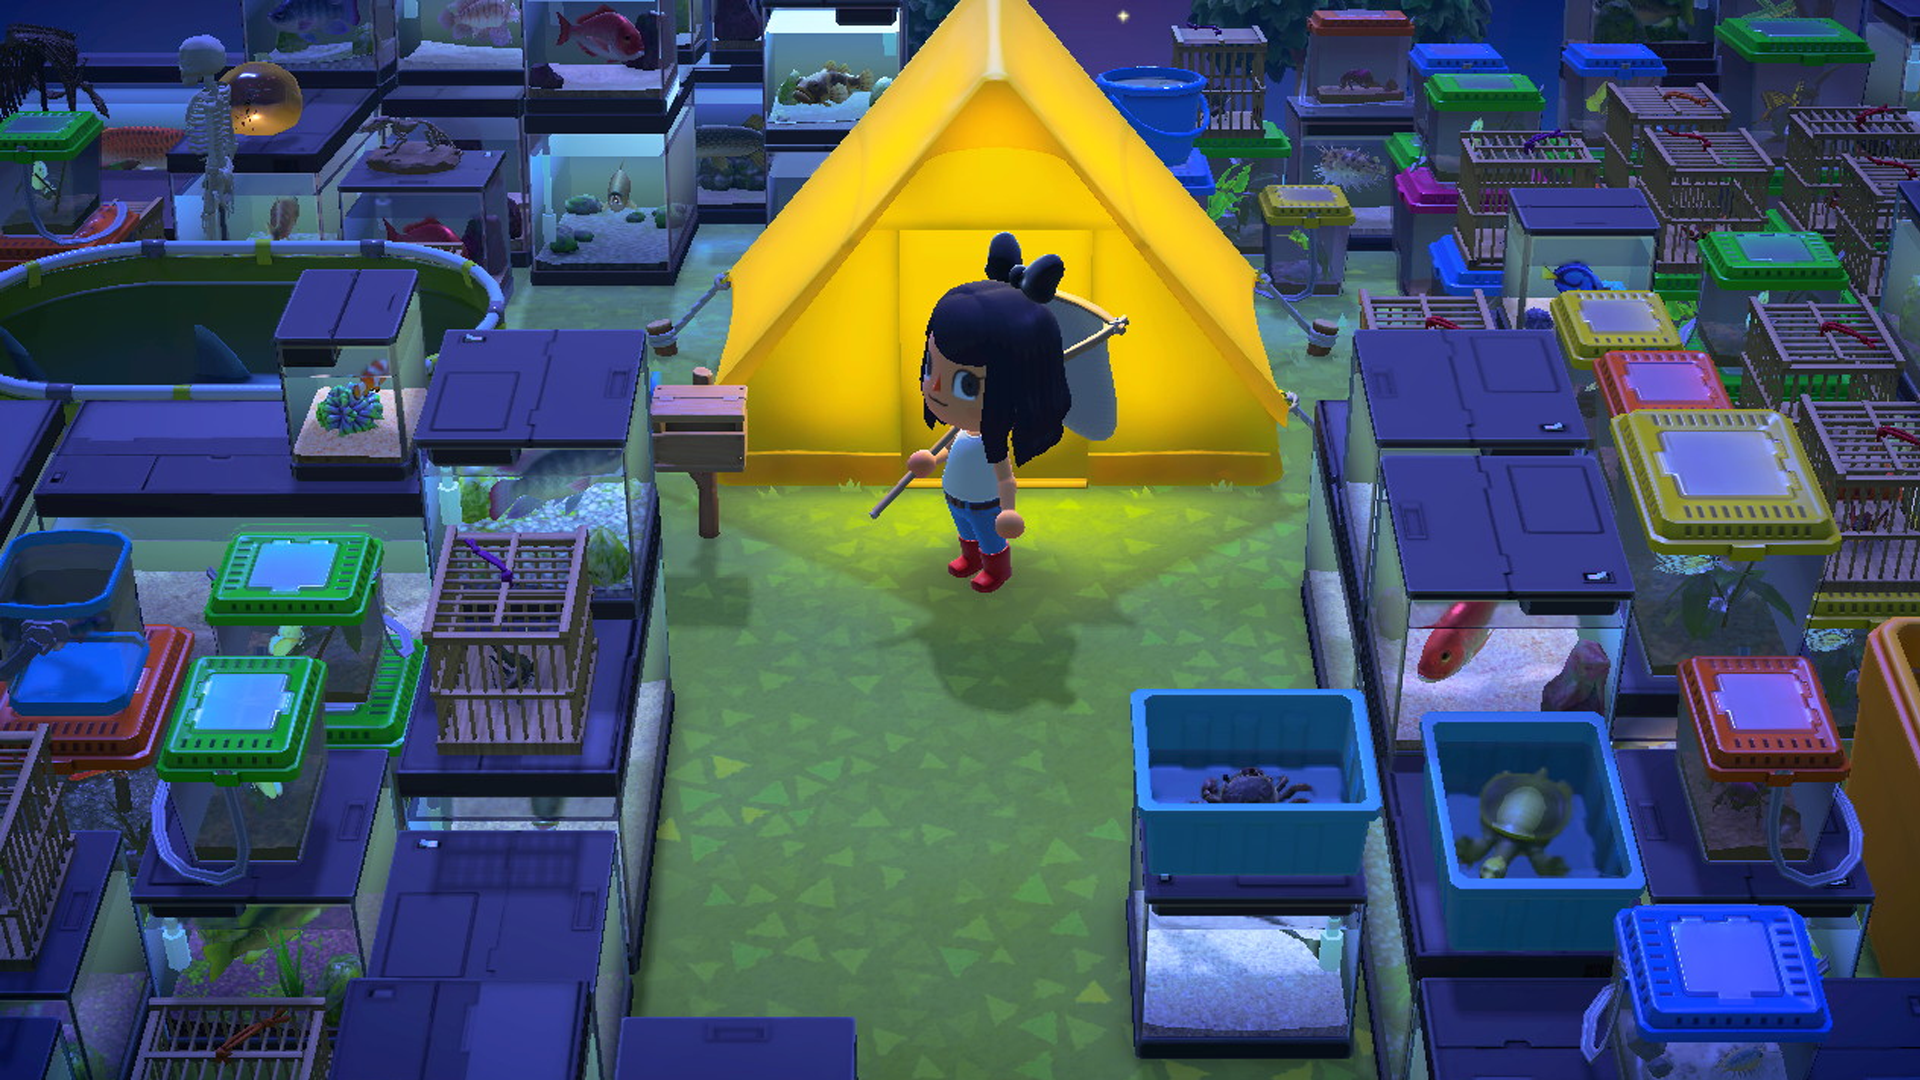 Animal Crossing Players Are Cluttering Their Islands With So Many Cages And Crates